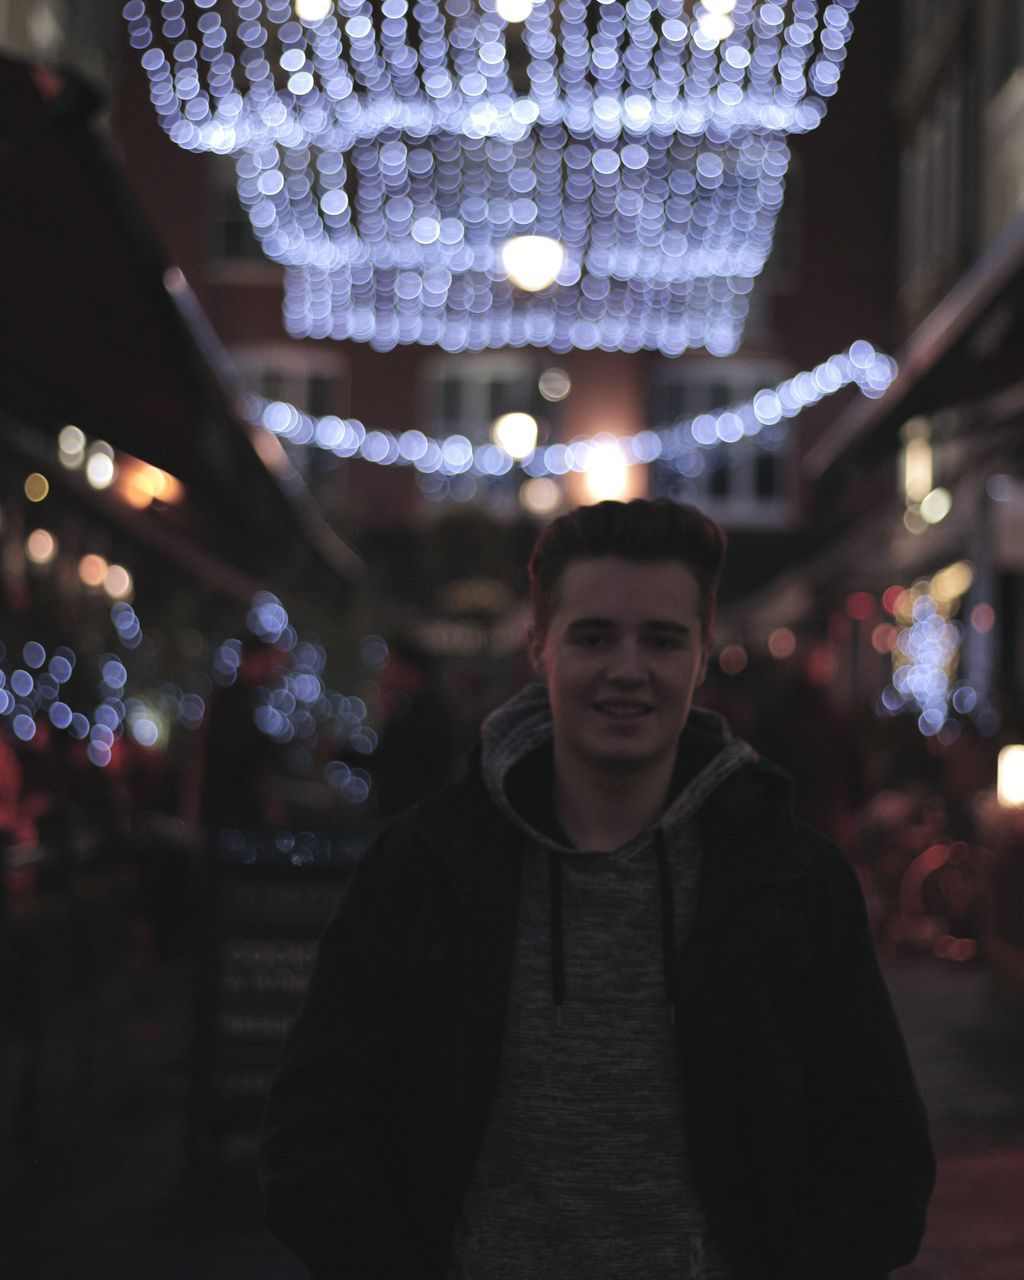 Portrait Of Smiling Man Standing Against Illuminated Decoration At Night